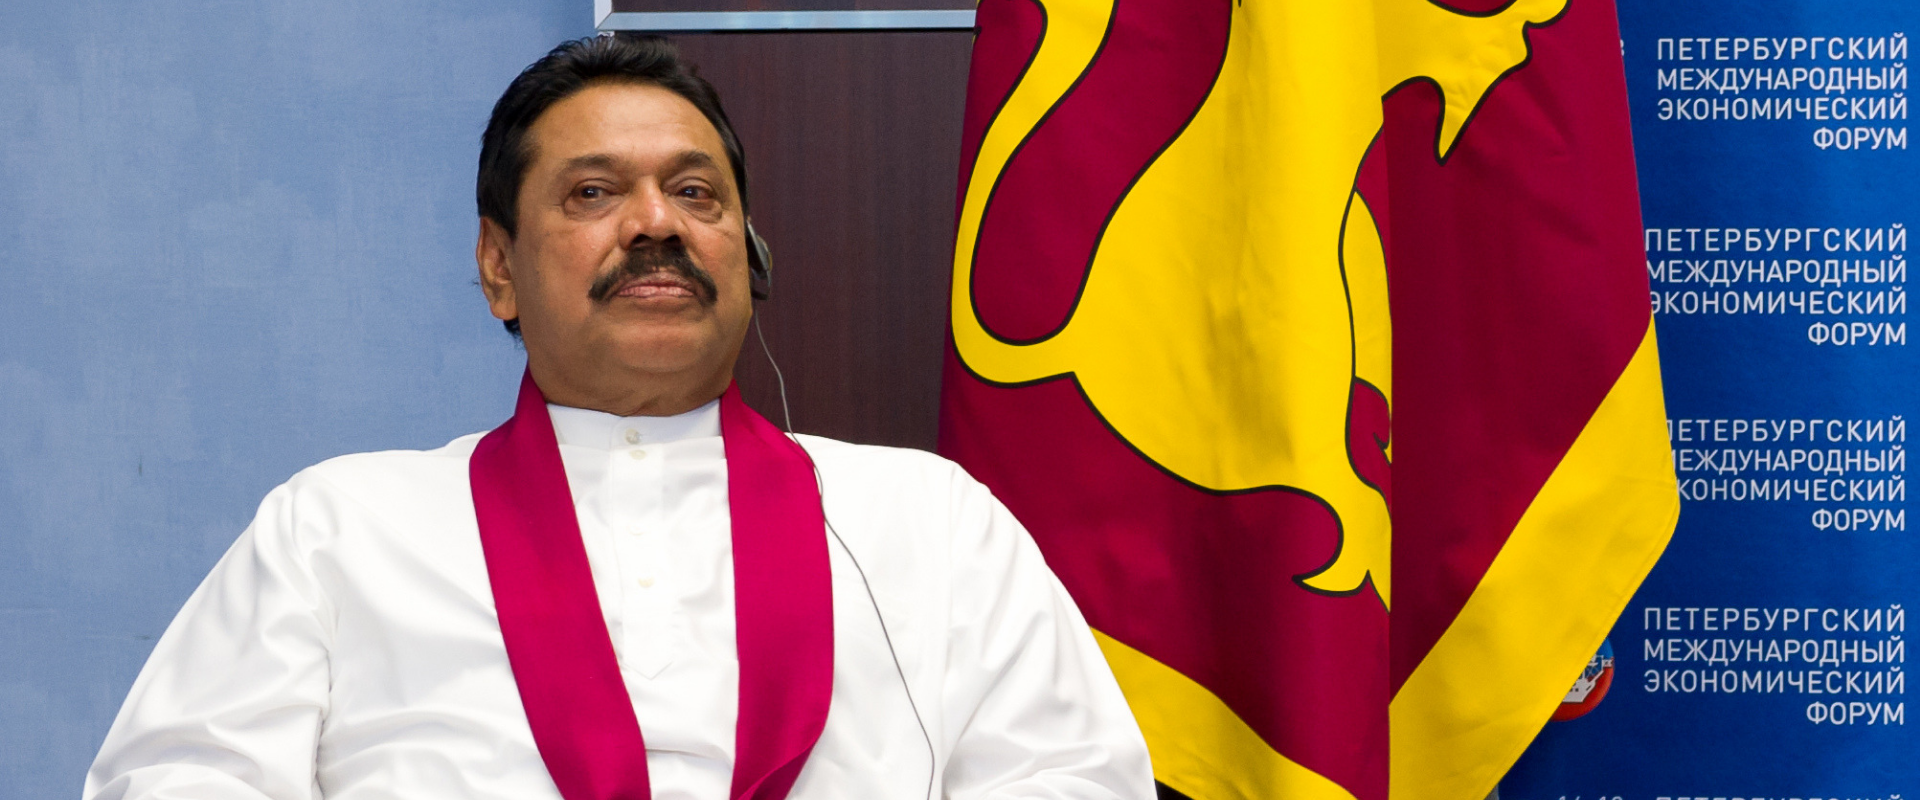 Sri Lanka's Tilt Towards Authoritarianism: Understanding Mahinda Rajapaksa and the Military